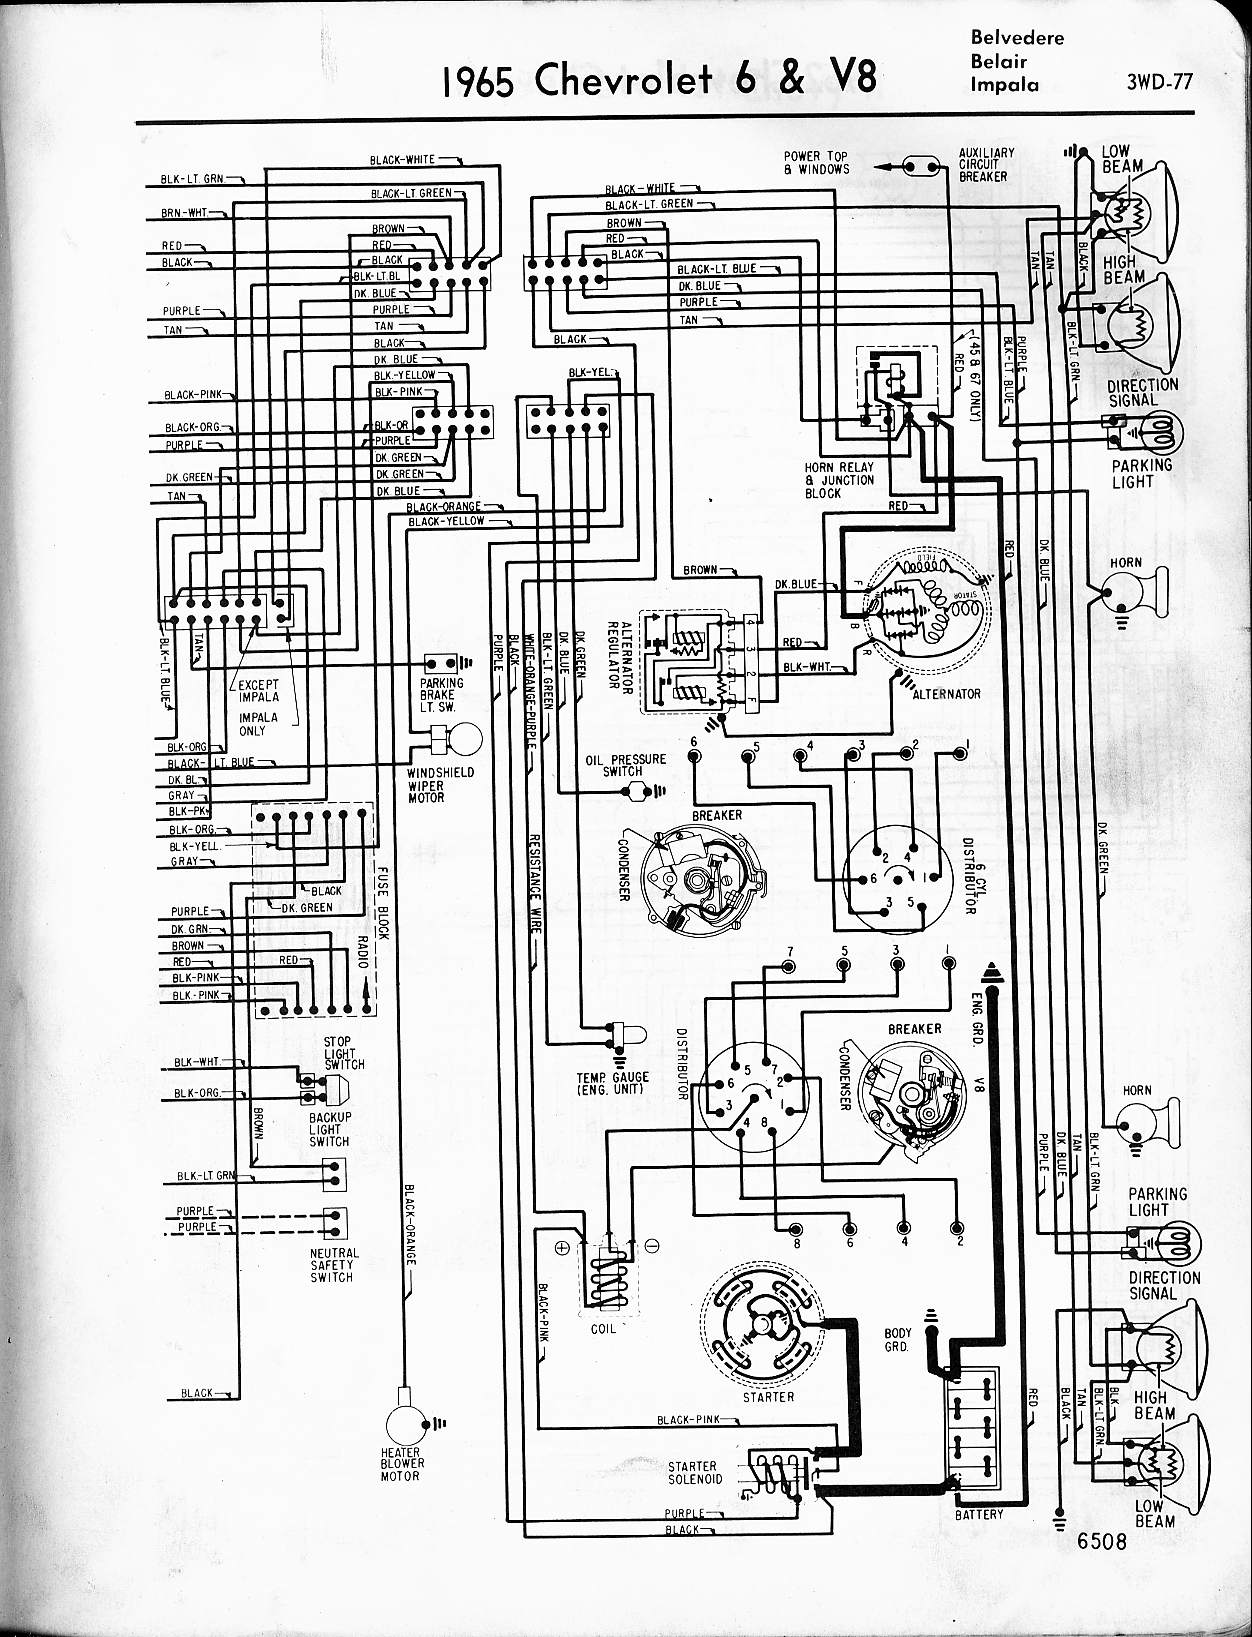 57 65 chevy wiring diagrams rh oldcarmanualproject com 1965 chevy impala wiring diagram 1965 chevy impala wiring diagram